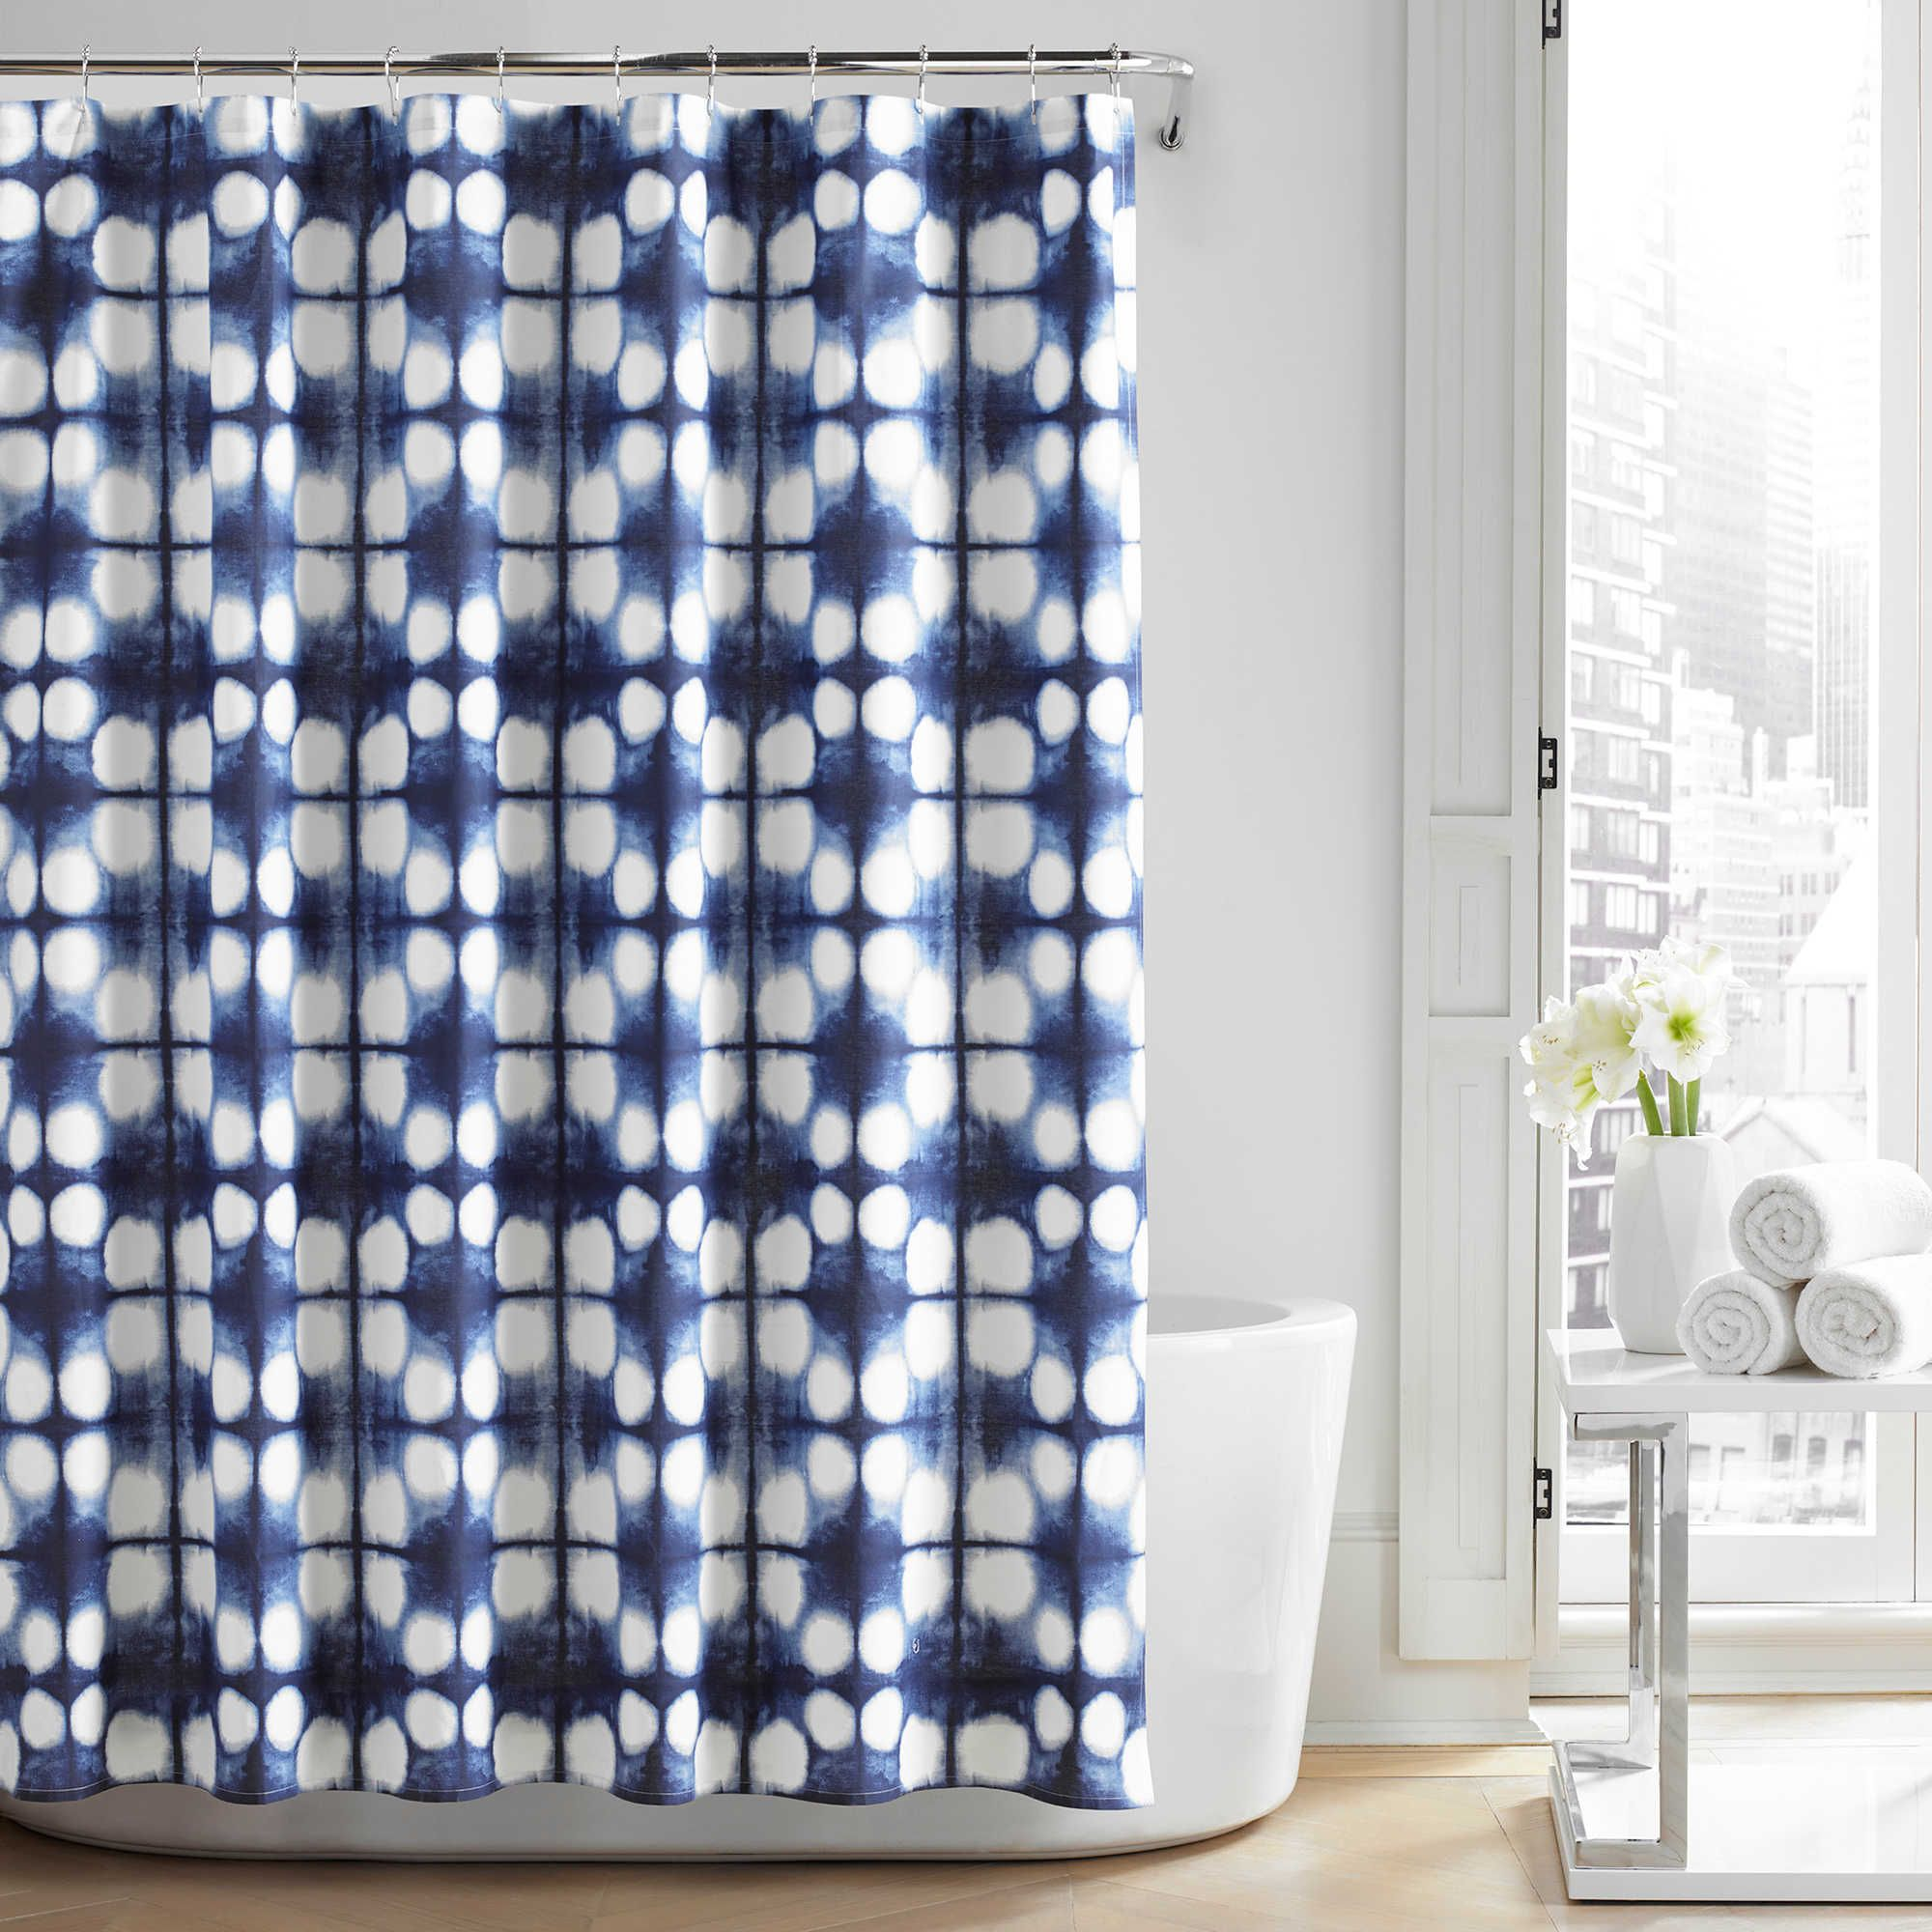 City LoftTM Nona Shower Curtain In Navy